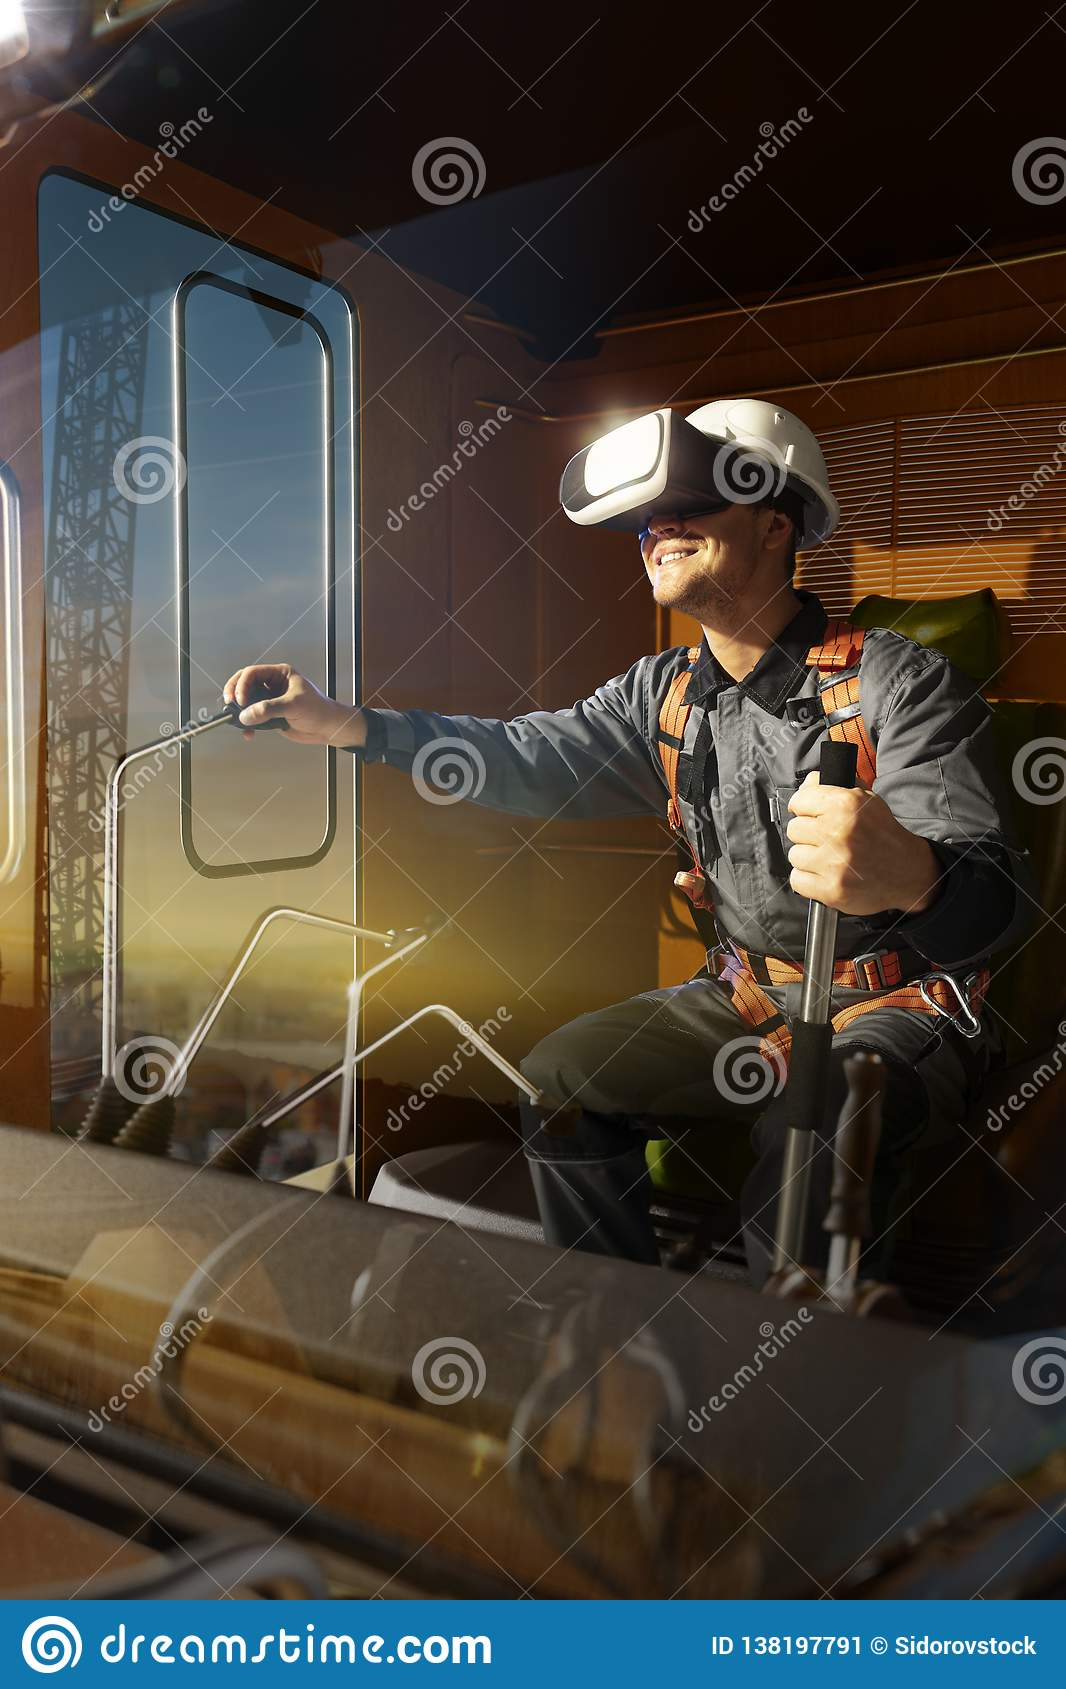 Engineer operator crane trying VR headset and exploring another world